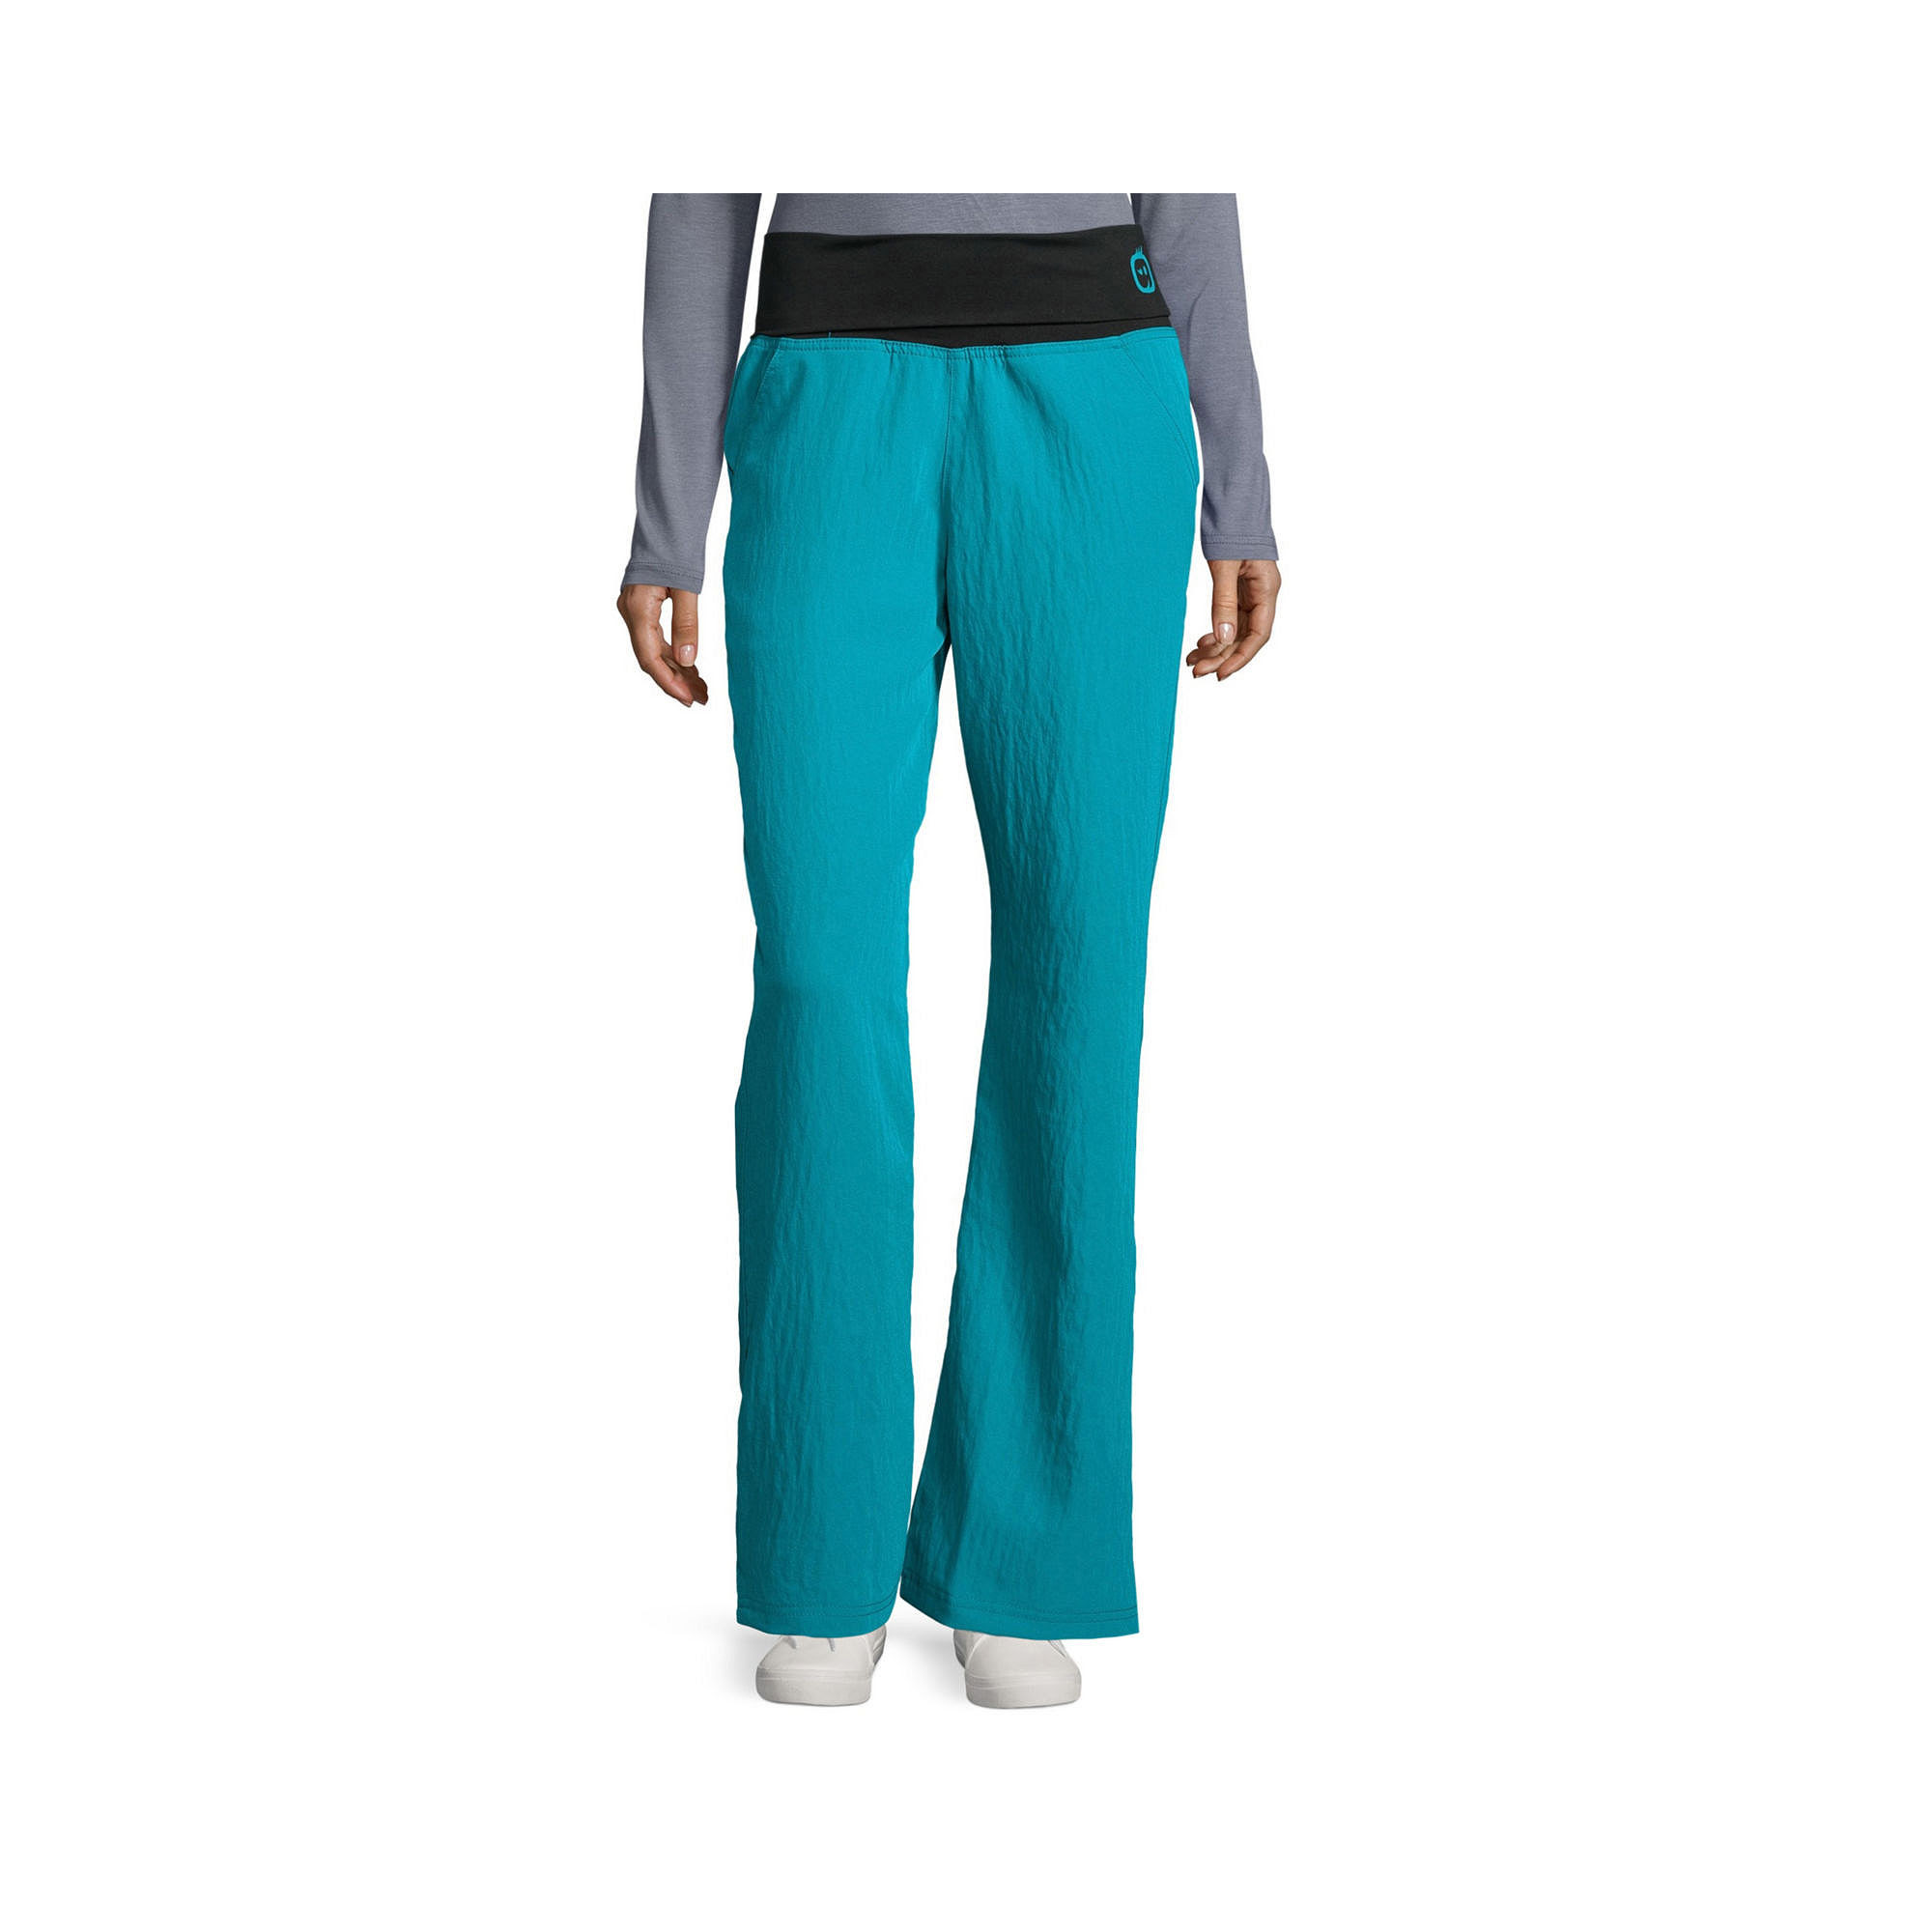 WonderWink Womens Four-Stretch Foldover Knit Waist Pants - Plus